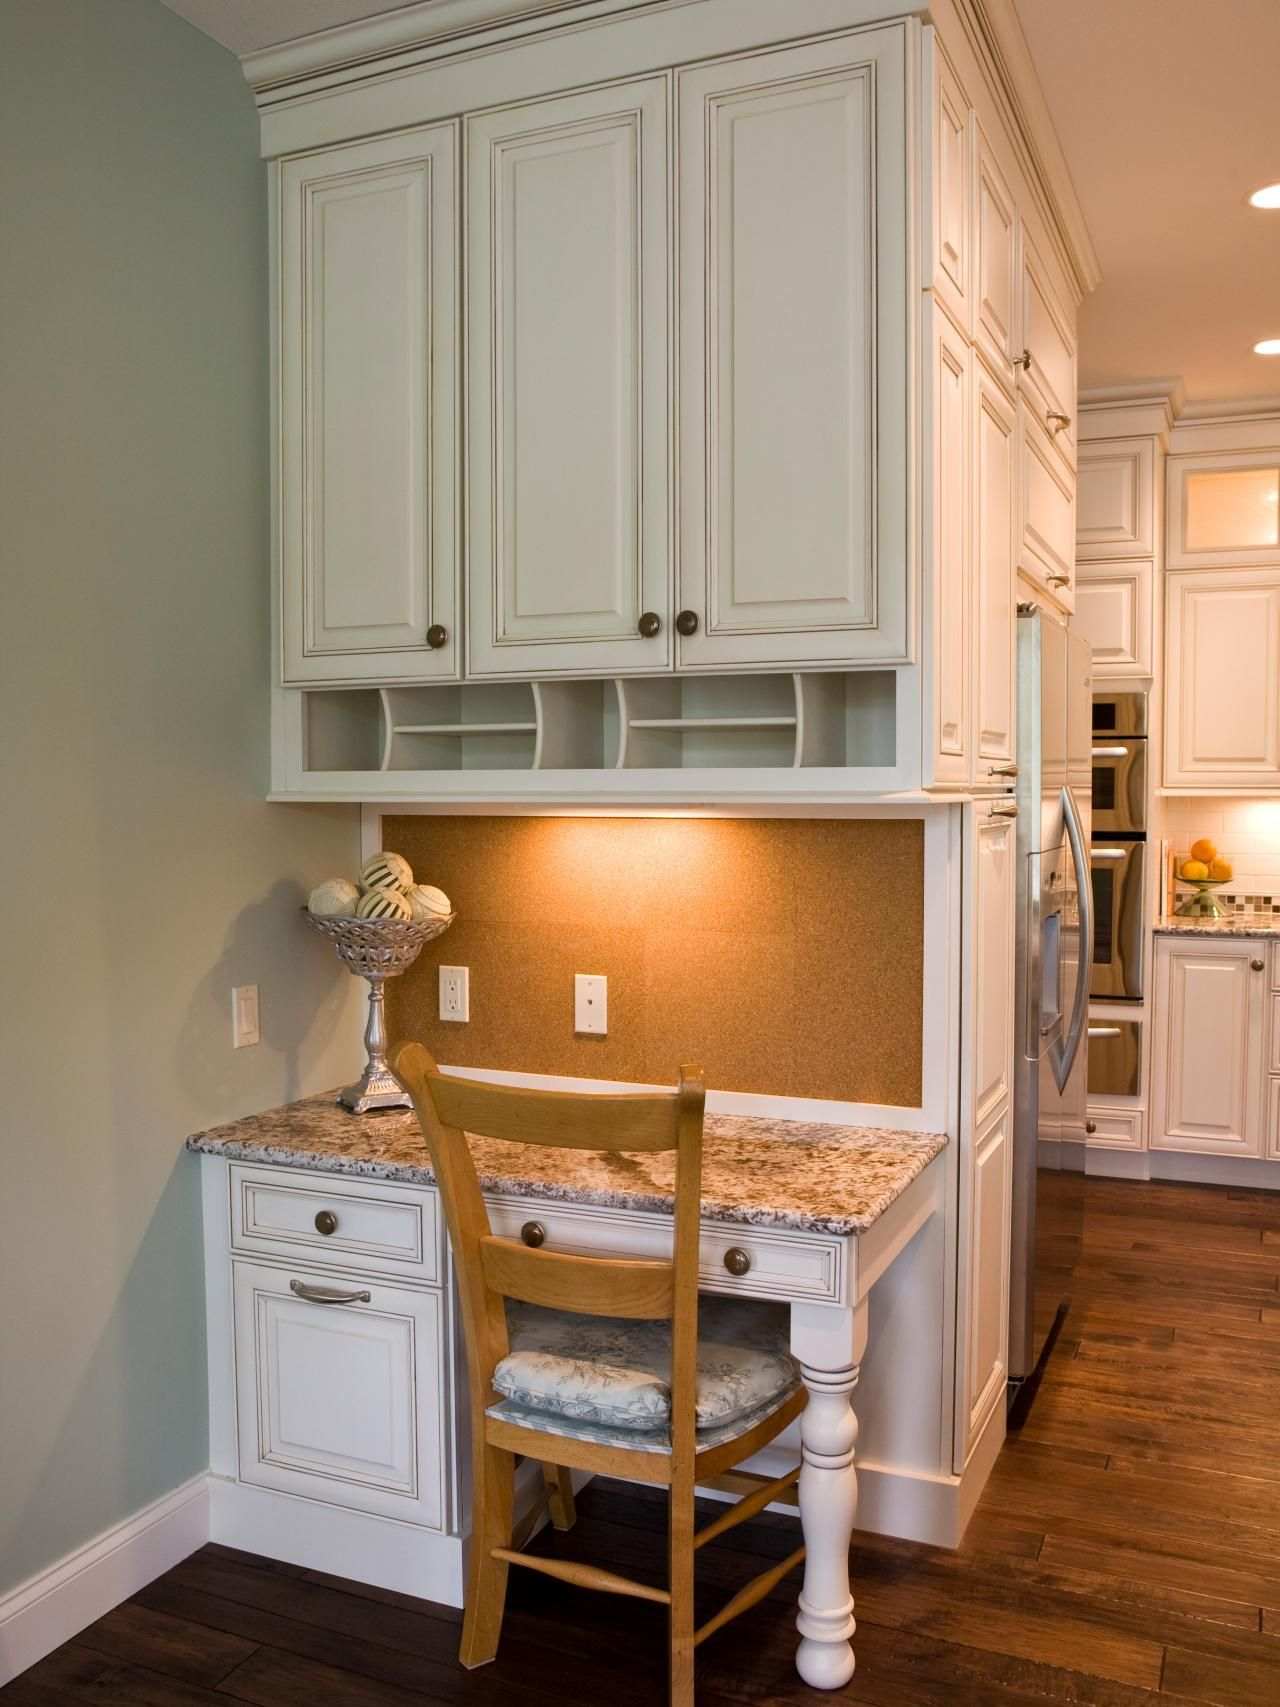 This Custom Designed Kitchen Desk Area Features Plenty Of